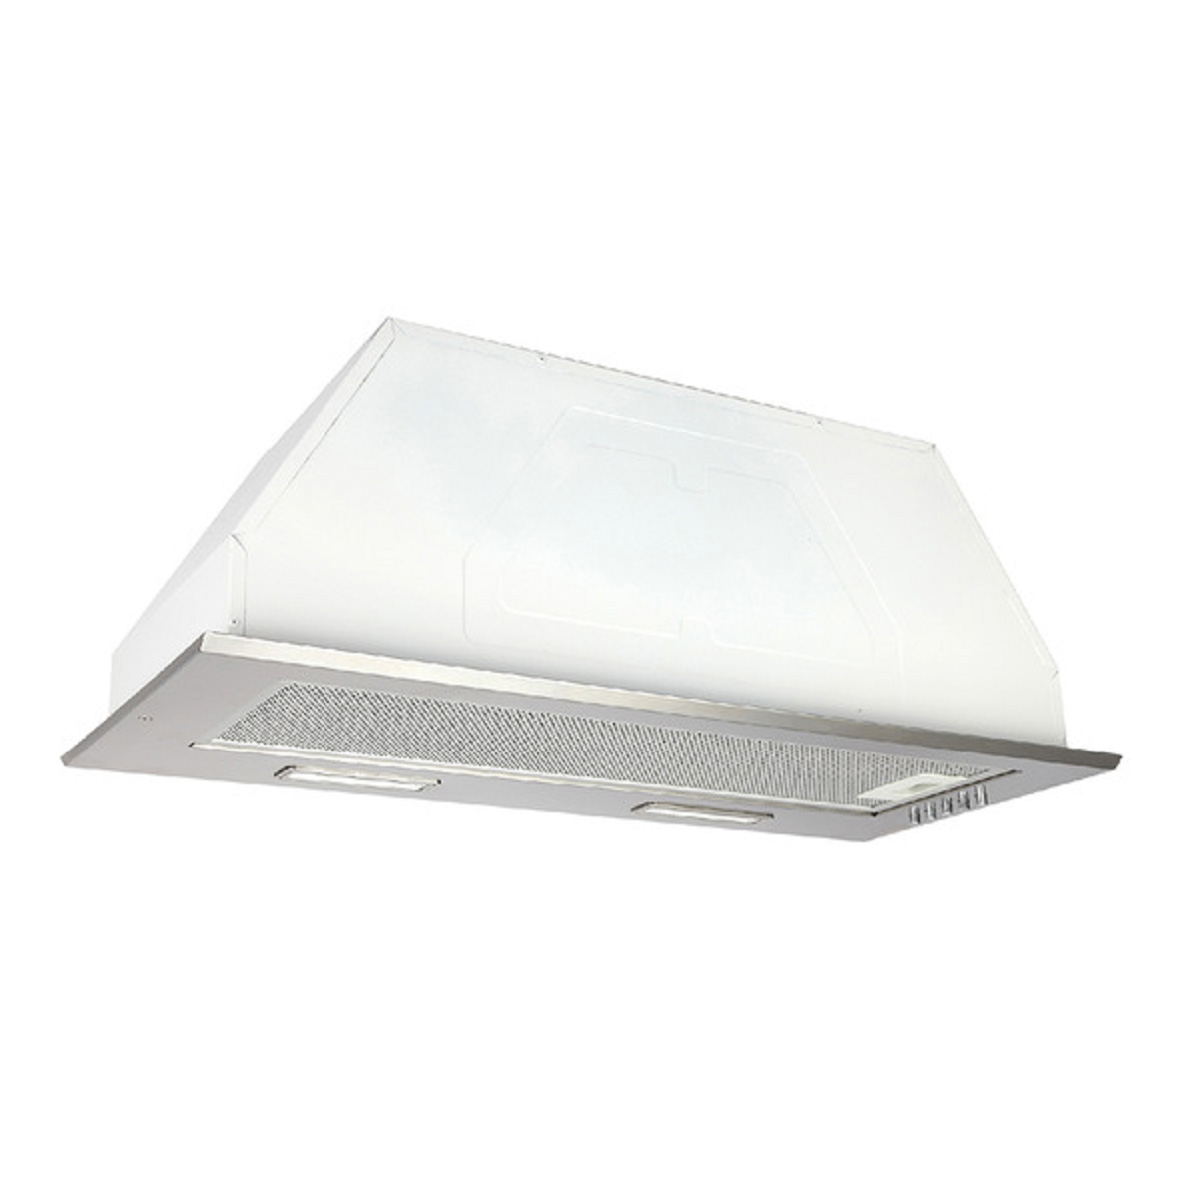 Glem CK75UCF Under Cupboard Rangehood